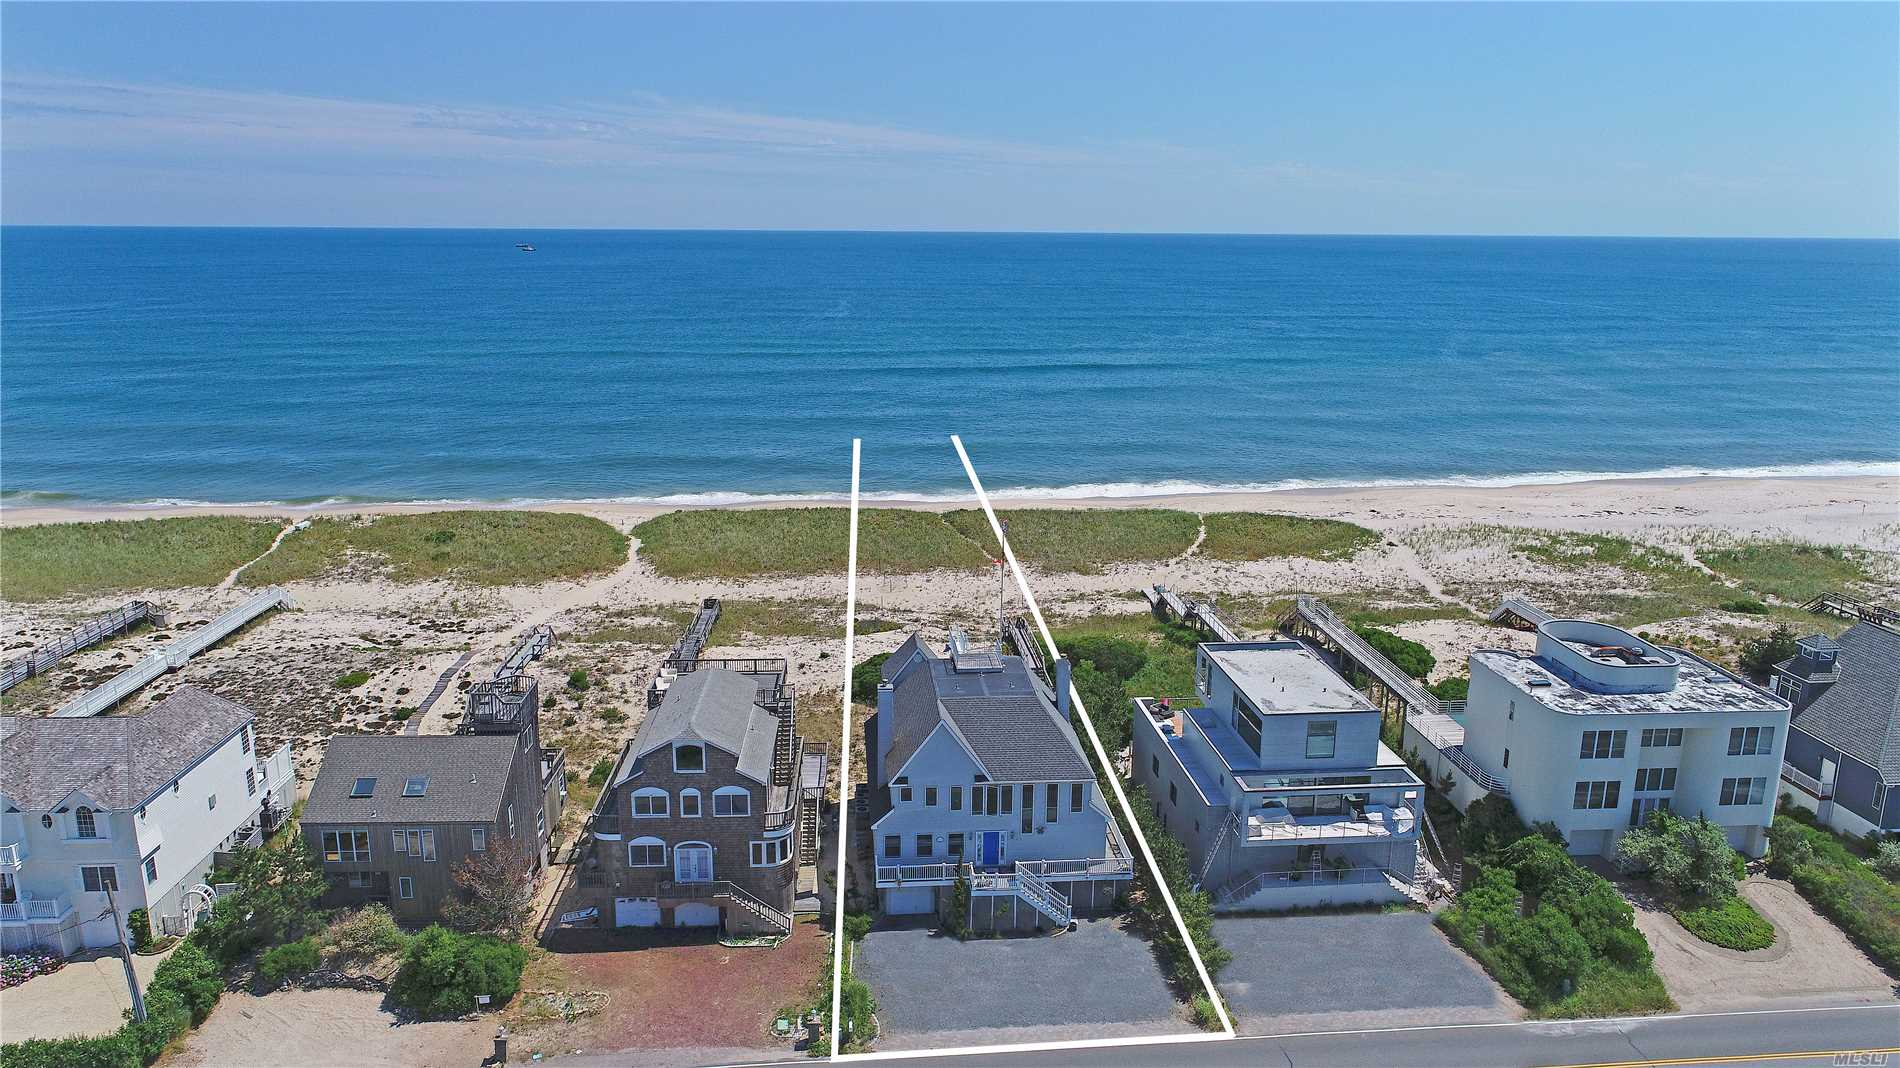 With expansive water views in all directions you'll never want to leave your oceanfront retreat. Turn-key postmodern home with low maintenance exterior & wrap around porch which allows access to all points of the home and the beach. The first floor offers three bedrooms, two baths, den/family room, laundry, elevator, & oversized master suite with oceanside porch, & full en-suite bath. Up the stairs your find the main living space with ocean views and large decking area, family room with fireplac